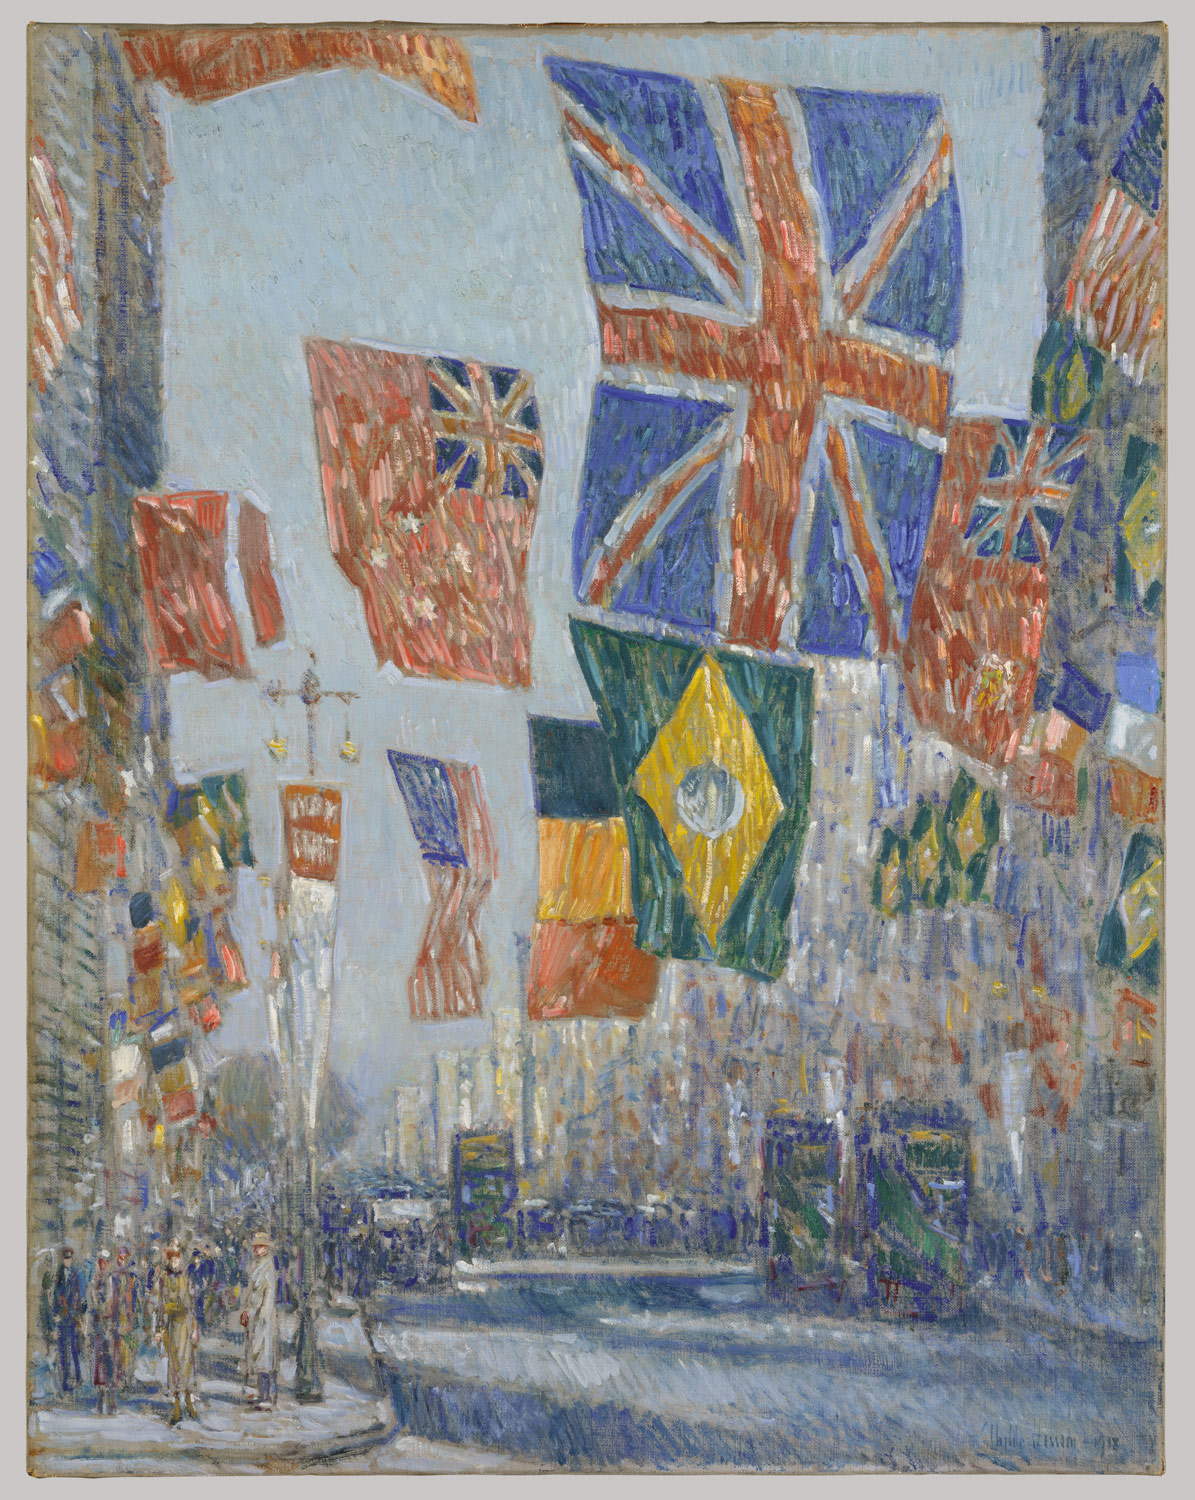 American Impressionist Child Hassam painted numerous patriotic views of New York's Fifth Avenue. Metropolitan Museum.